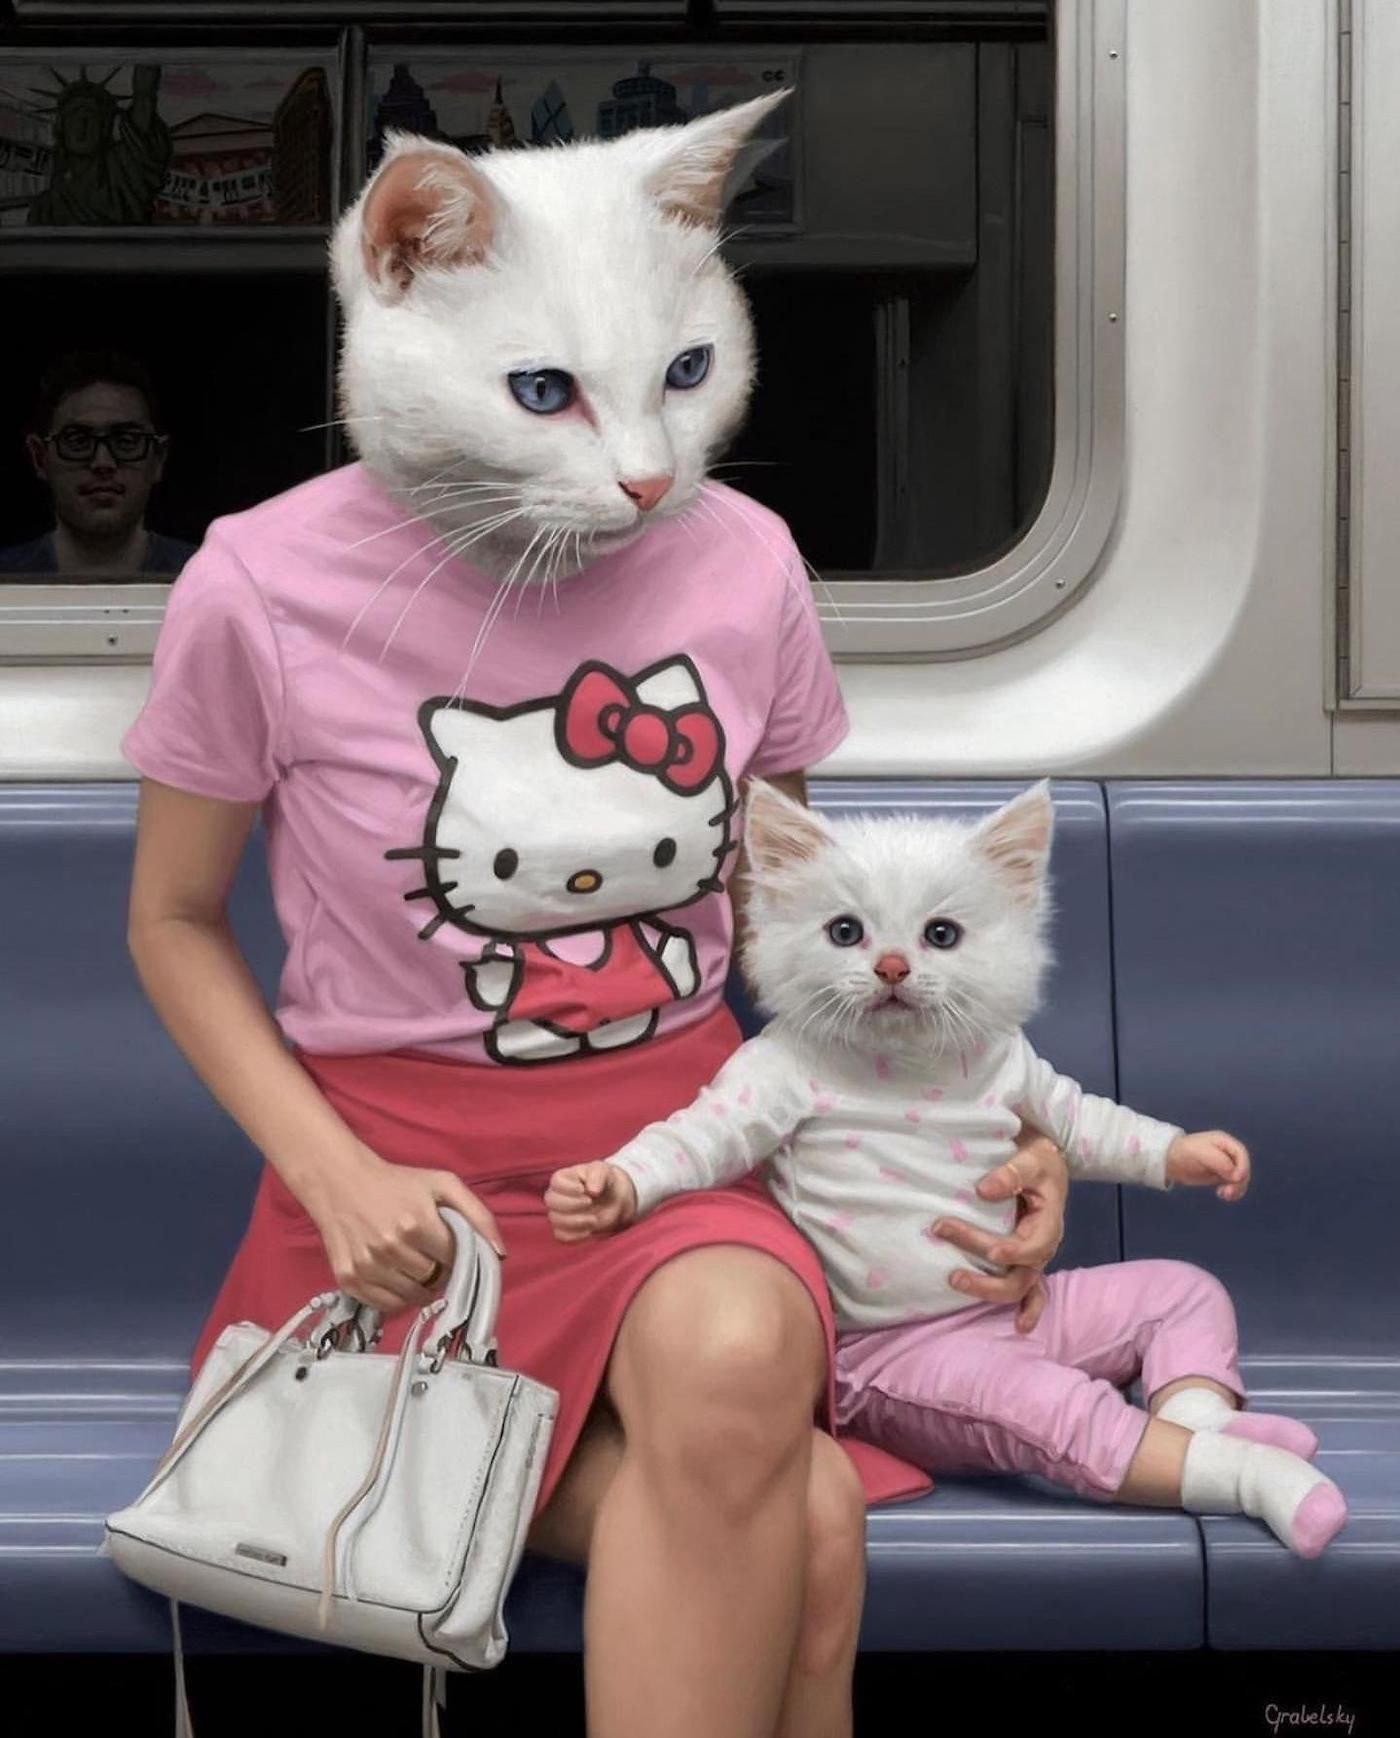 Animal Human Hybrids Spotted On New York Subway In Surreal Paintings By Matthew Grabelsky En 2020 Arte Divertido Metro De Nueva York Arte